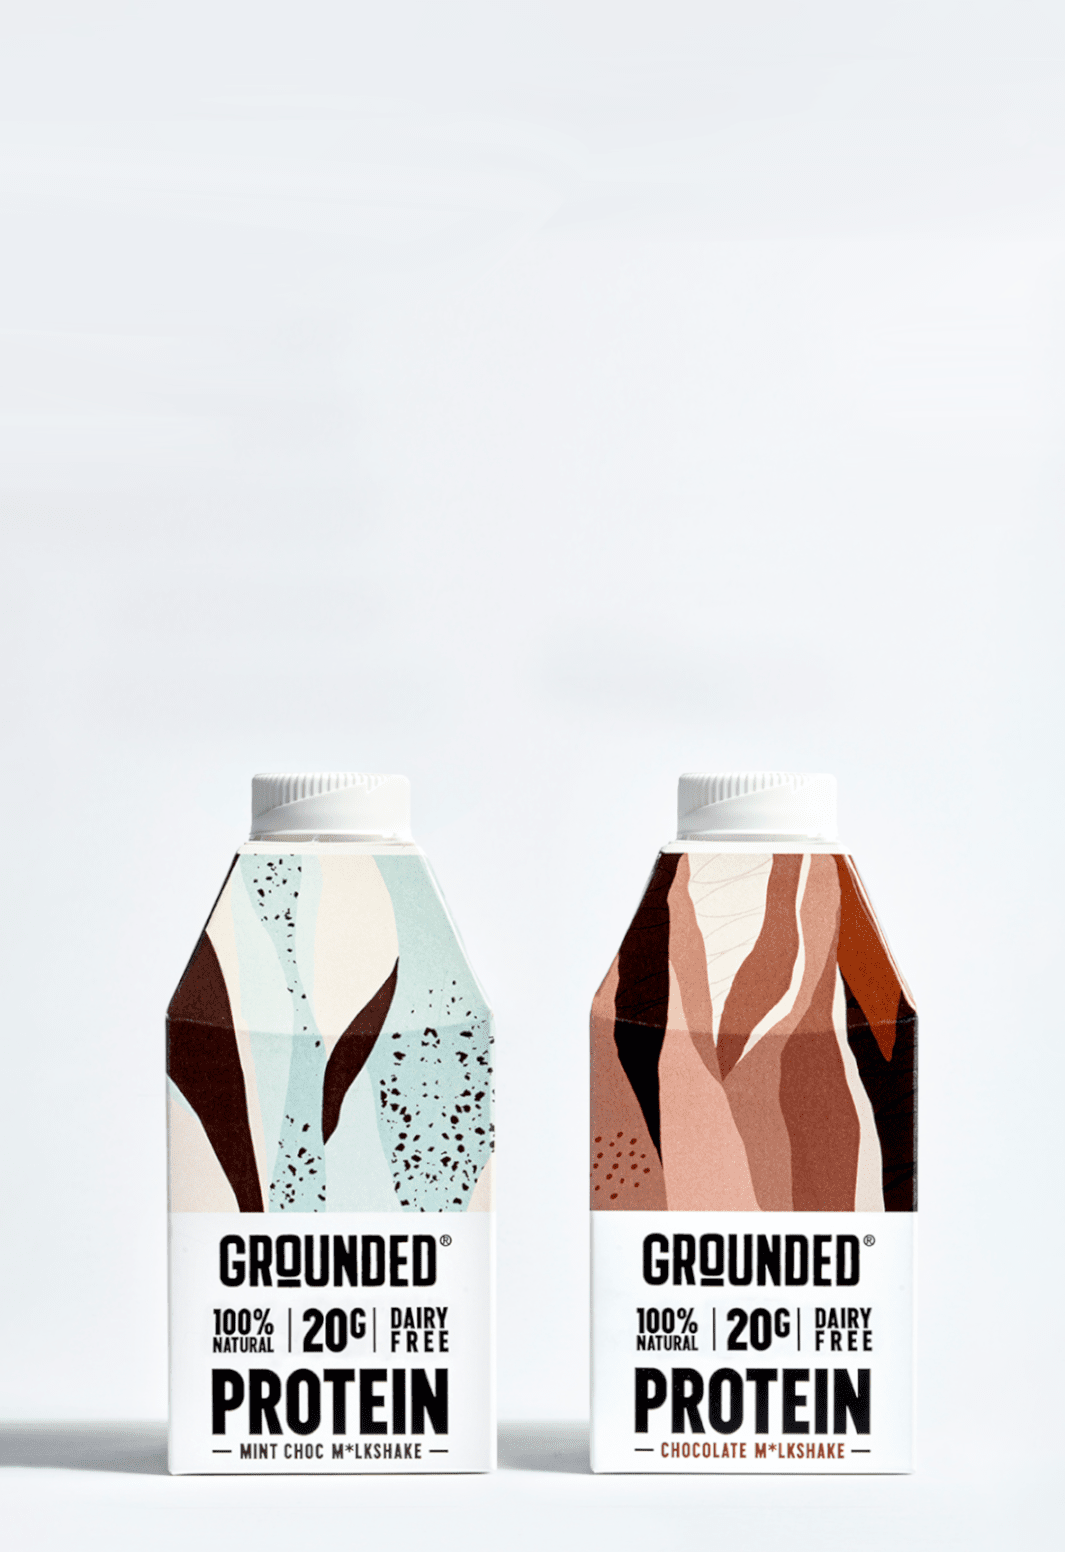 GROUNDED Plant-based protein m*lkshakes